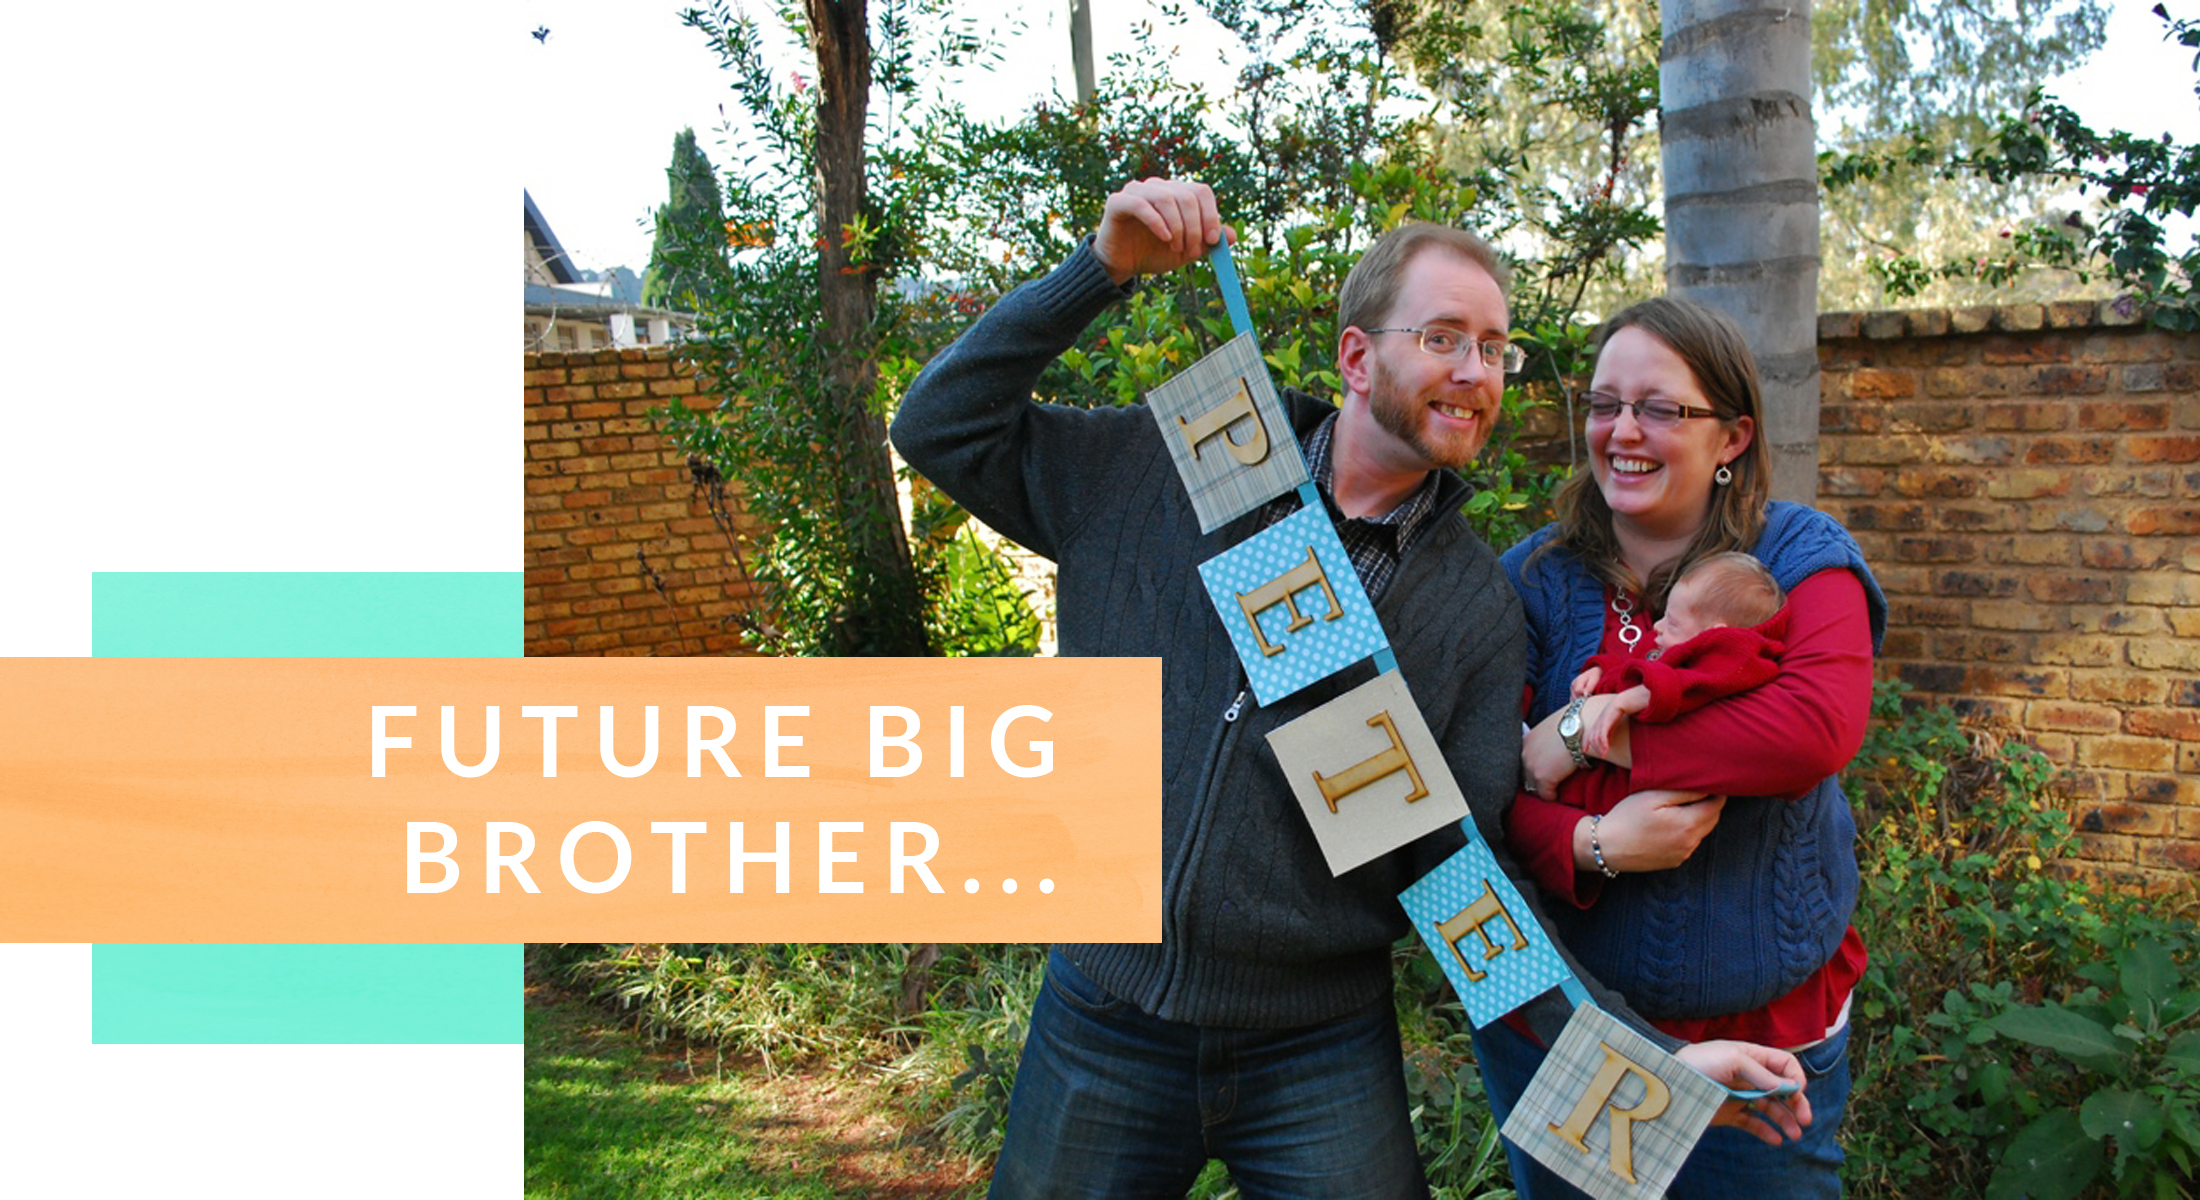 Missionary family of three from South Africa hoping to grow family through adoption